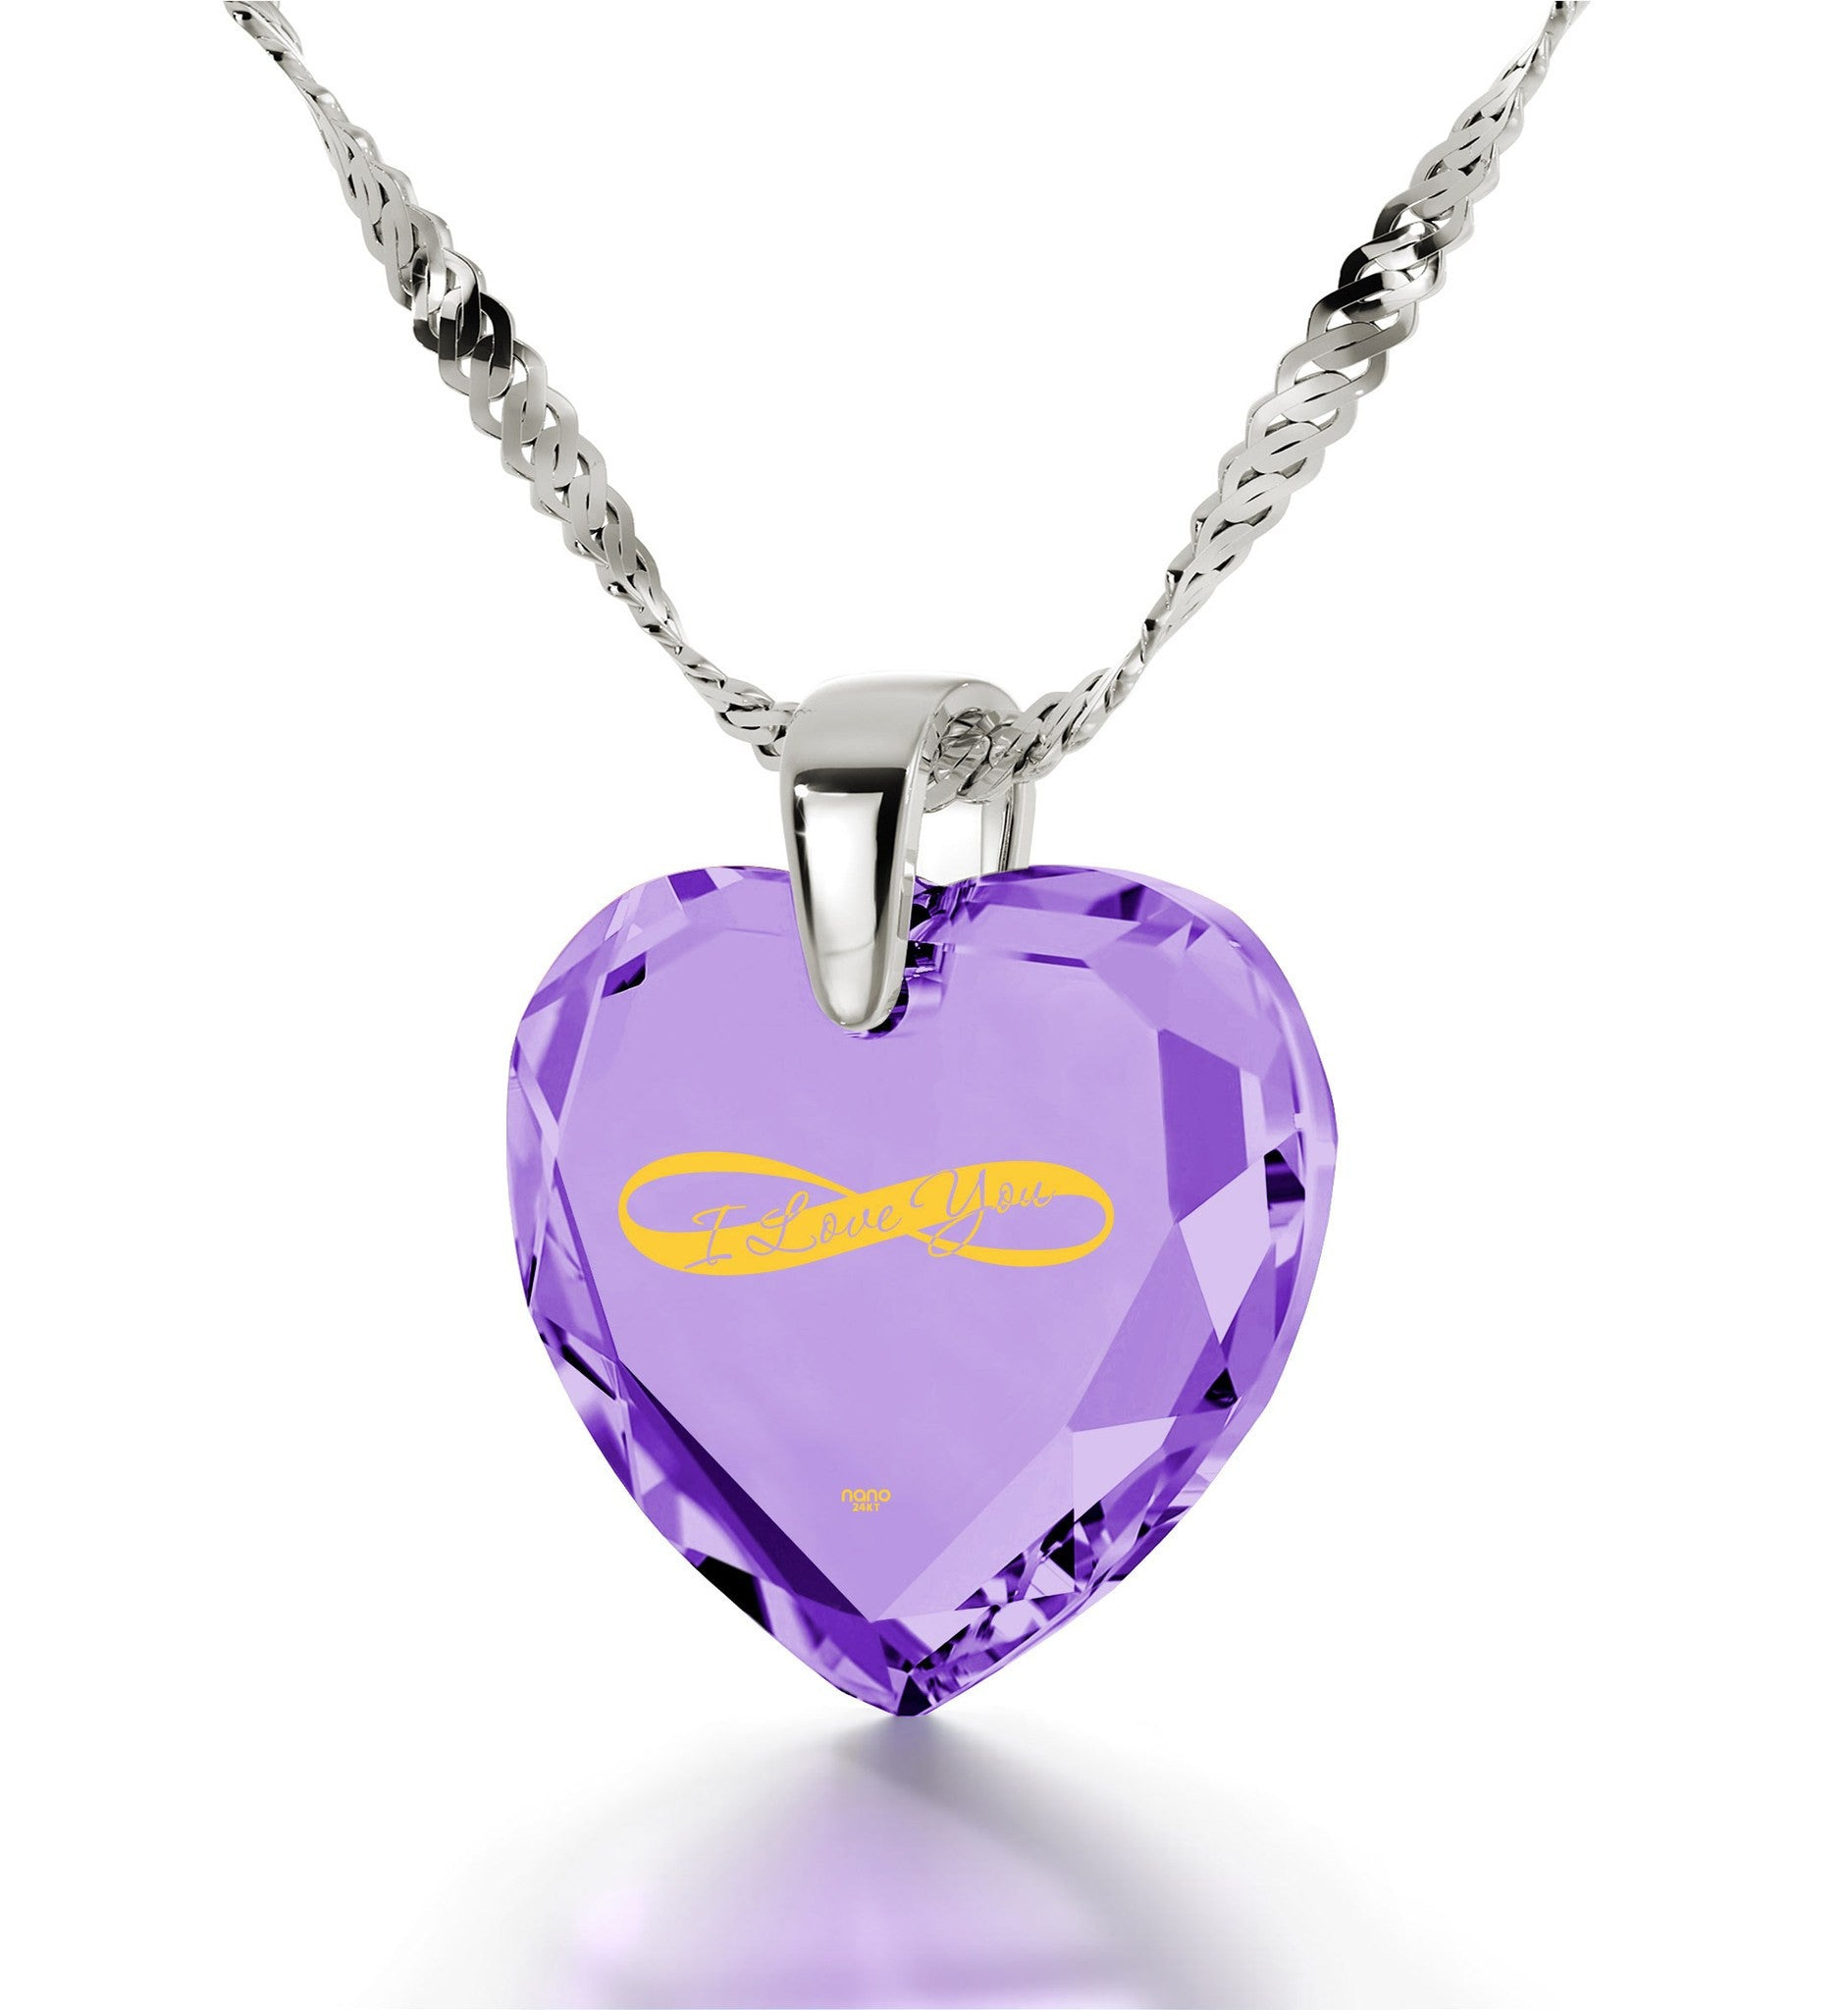 Great Christmas Gifts for Wife, Light Amethyst, 24k Imprint, Necklaces for Your Girlfriend, by Nano Jewelry